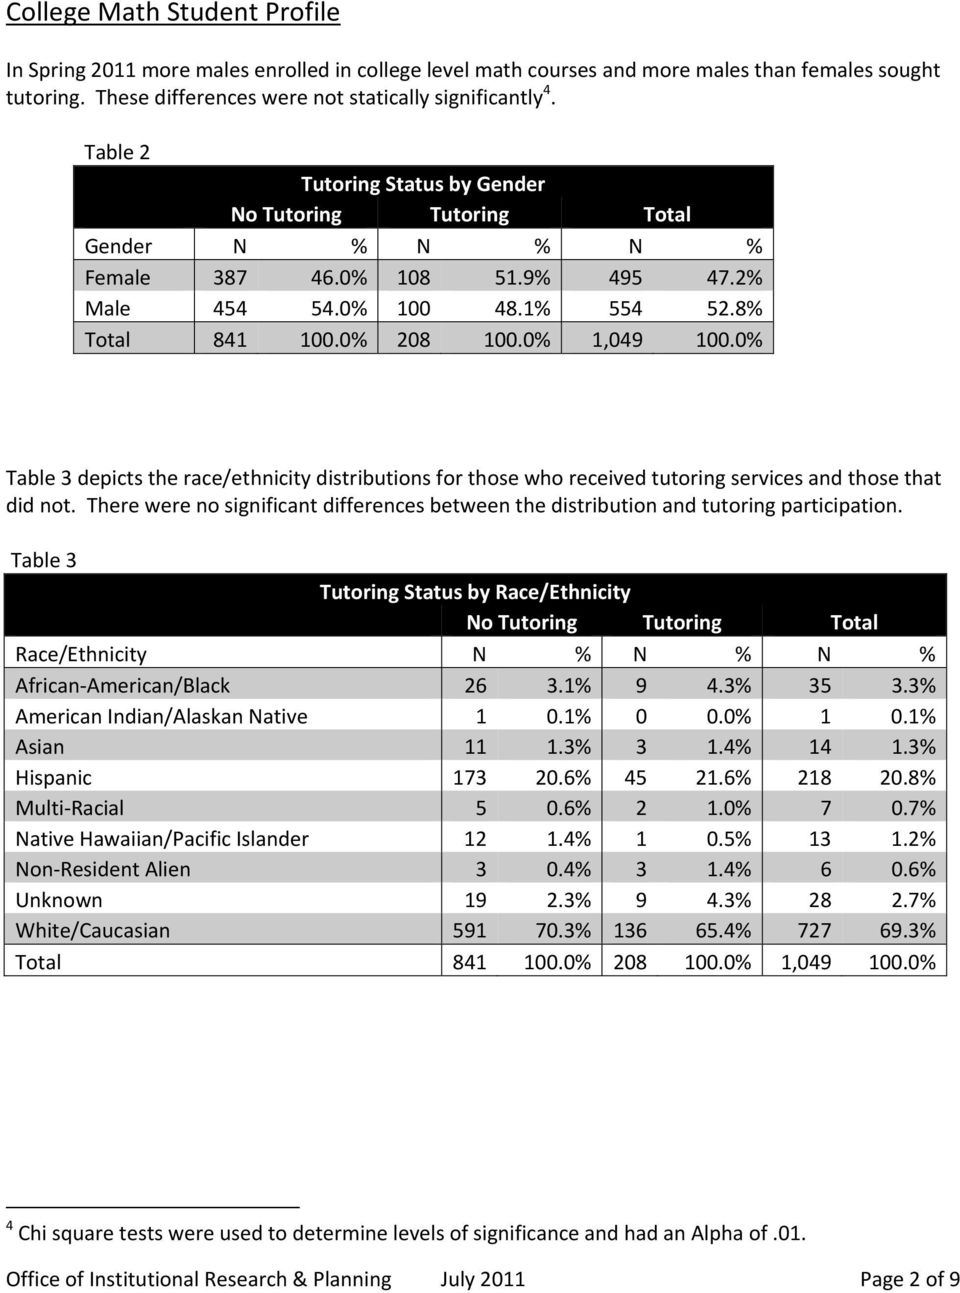 8% Table 3 depicts the race/ethnicity distributions for those who received tutoring services and those that did not.